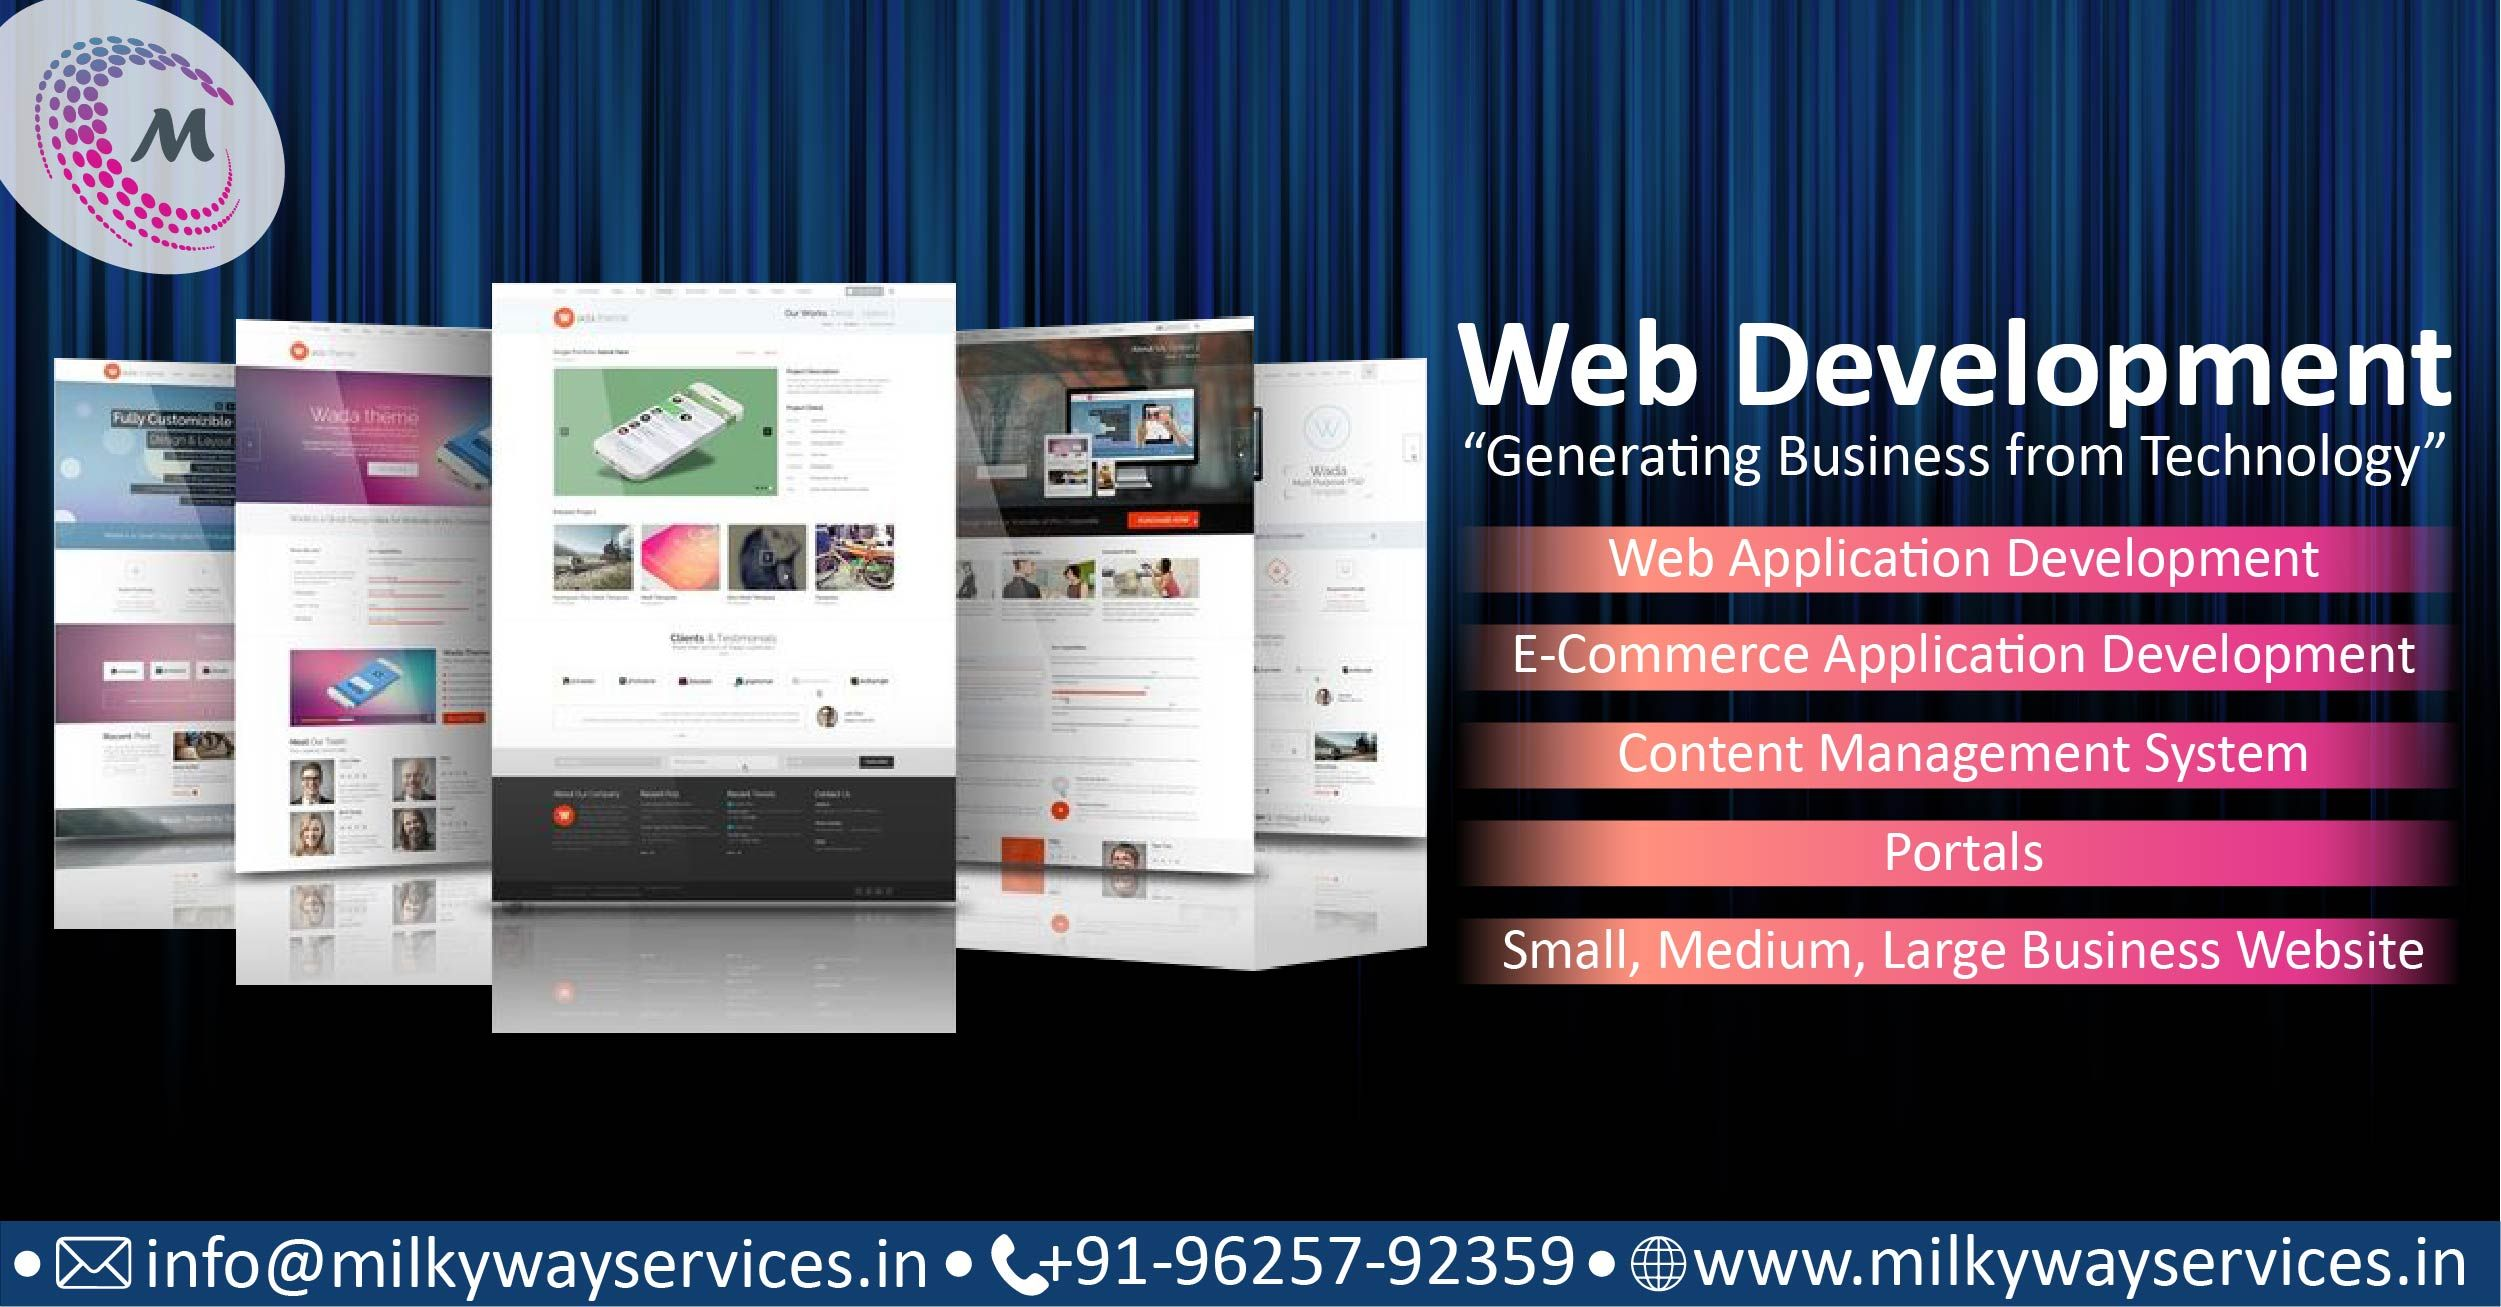 Web Development Generating Business From Technology Web Design Company Web Design Email Template Design